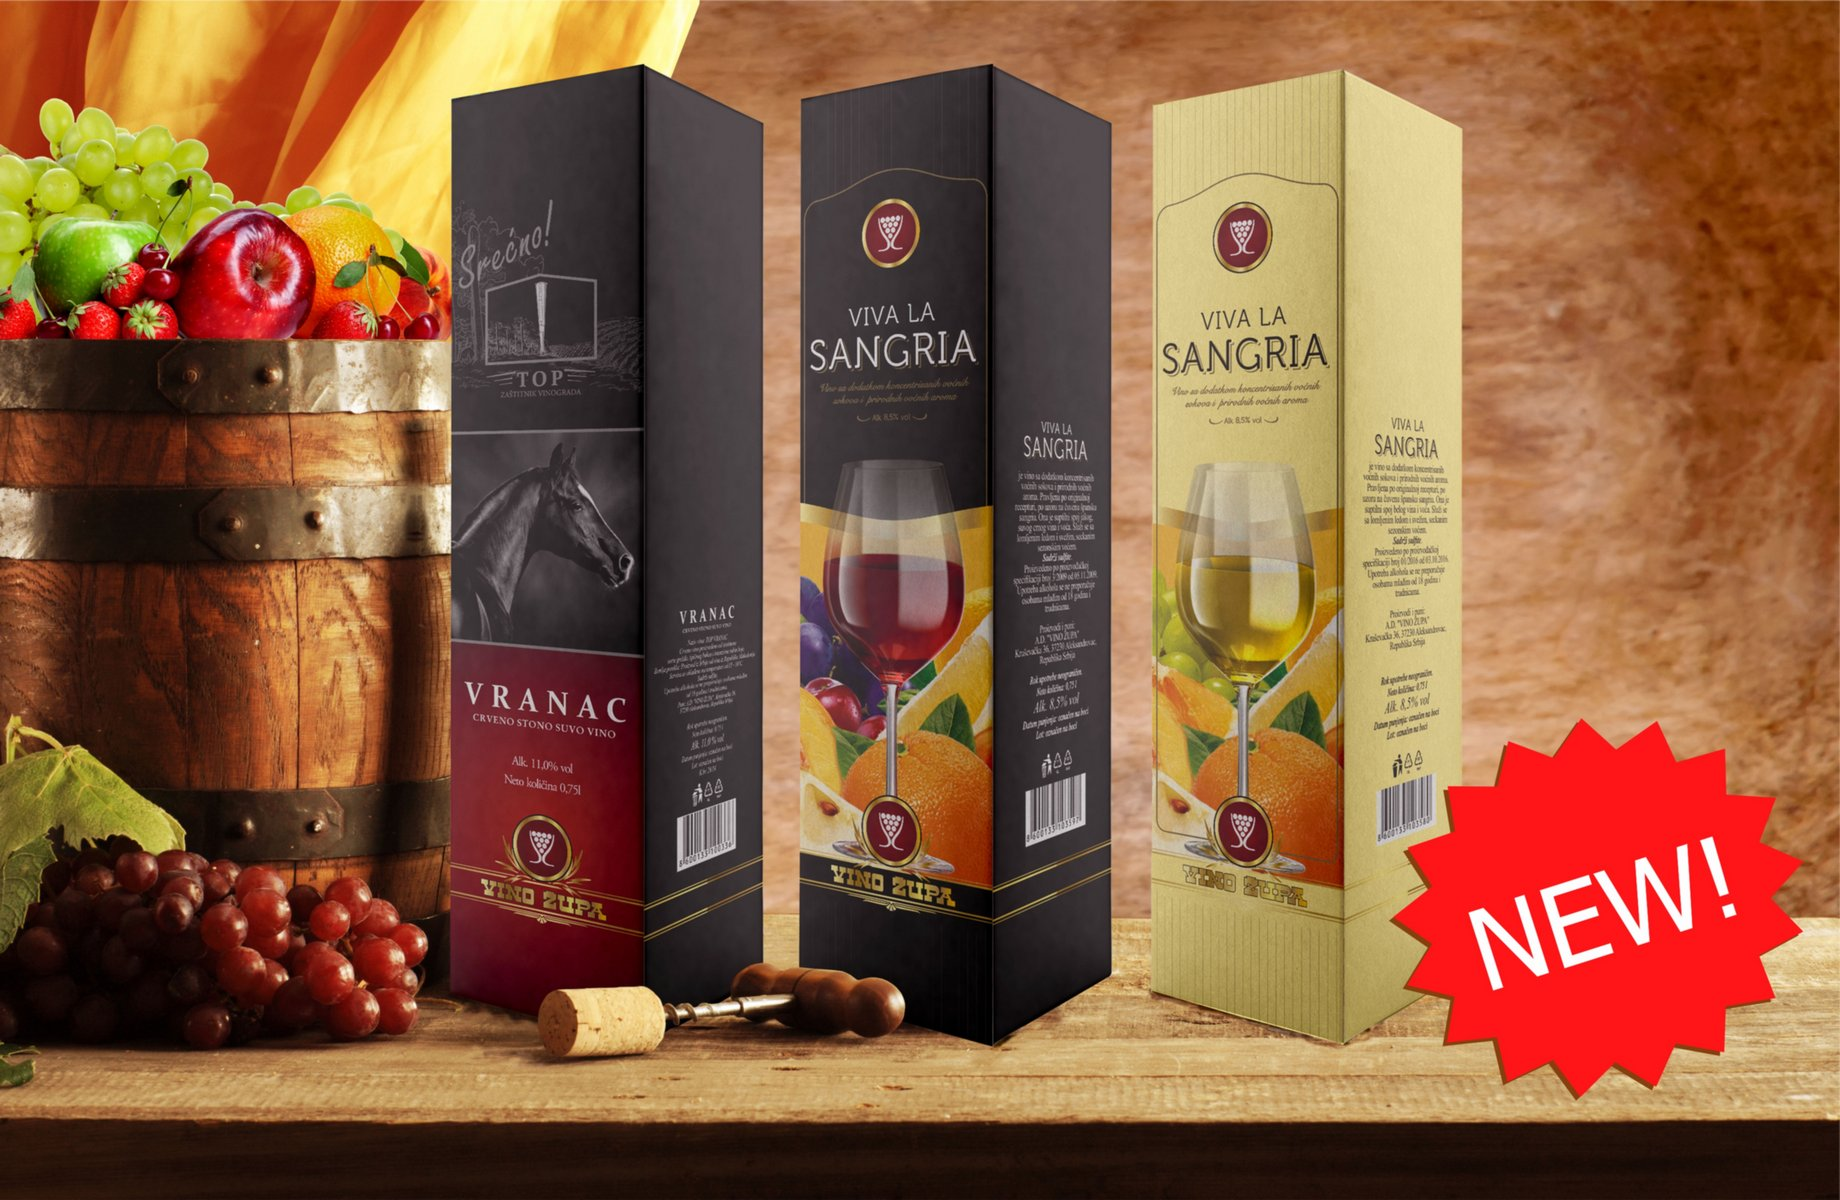 Vranac and Sangria wines in the box